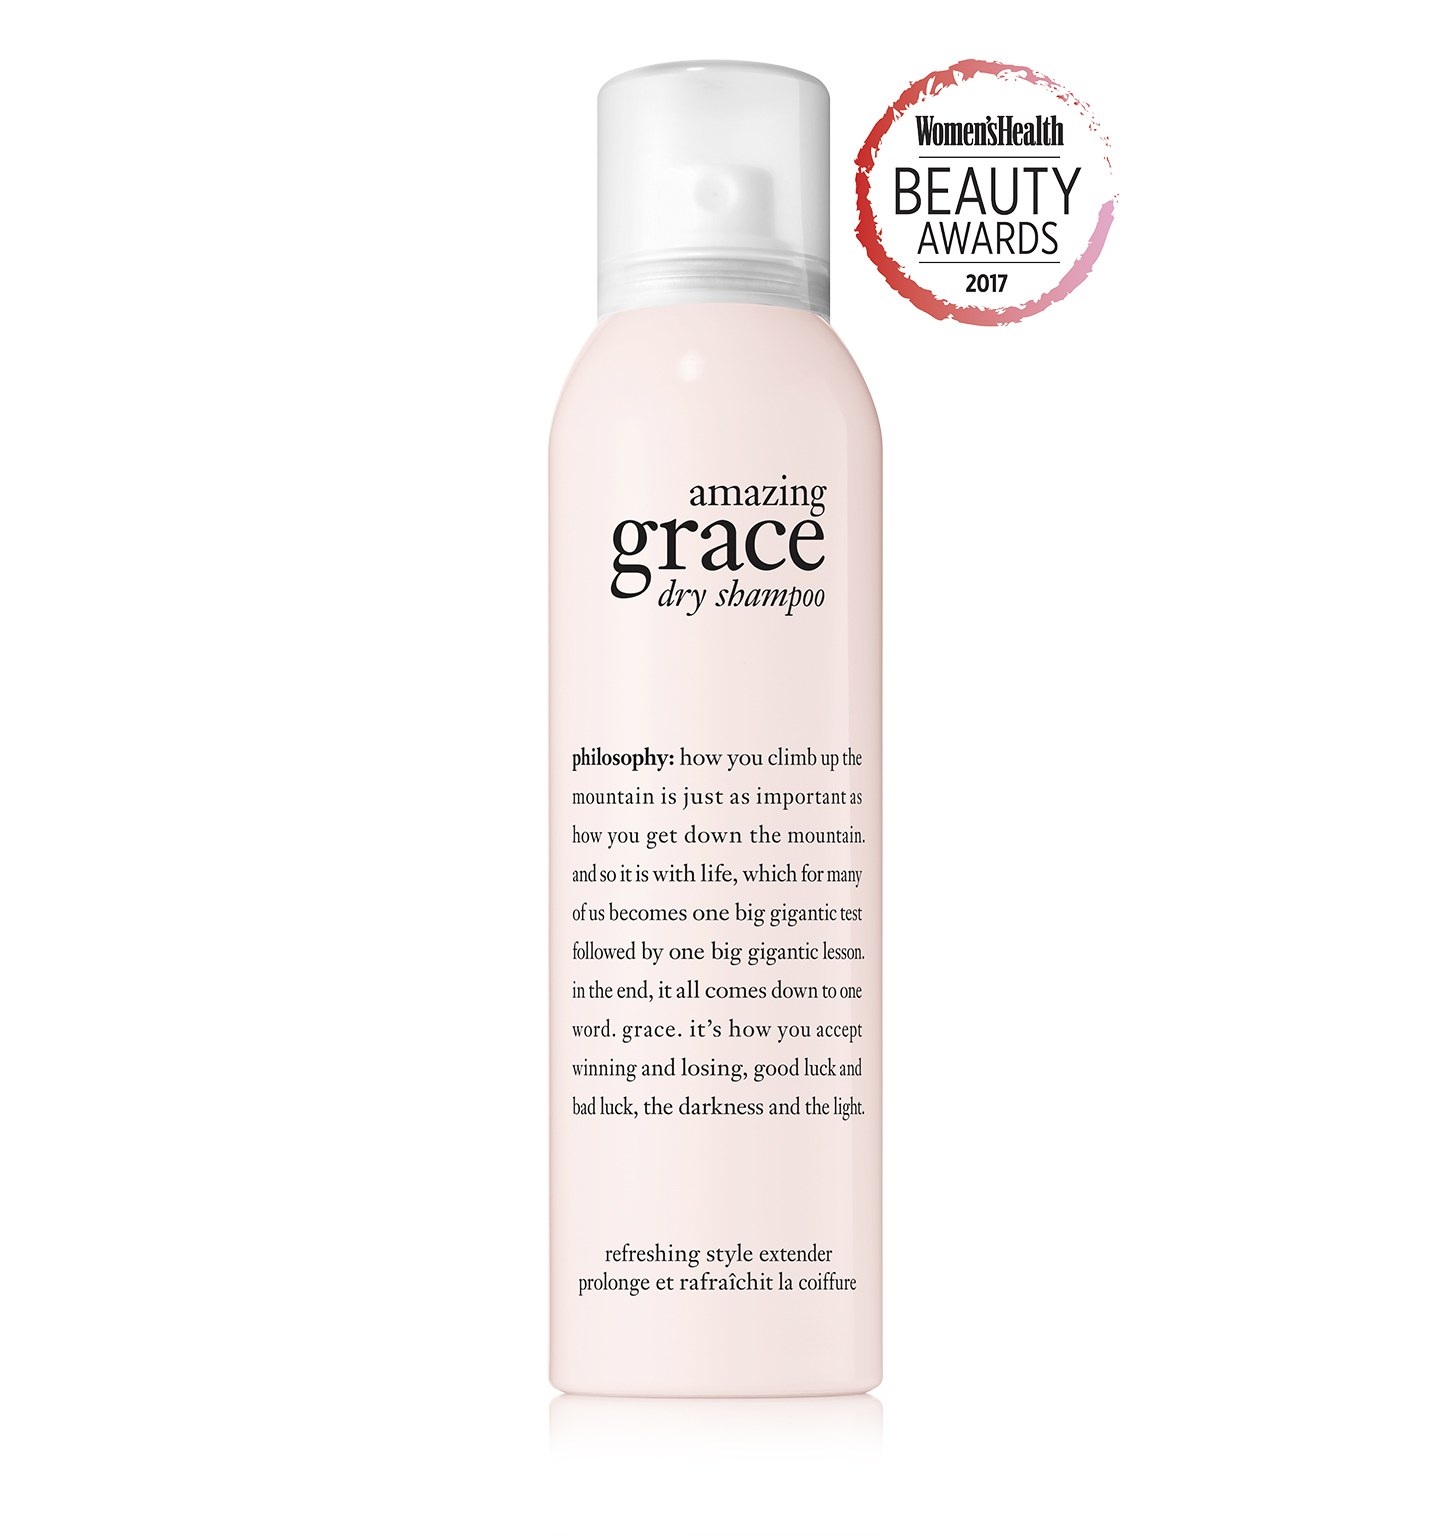 philosophy, amazing grace dry shampoo